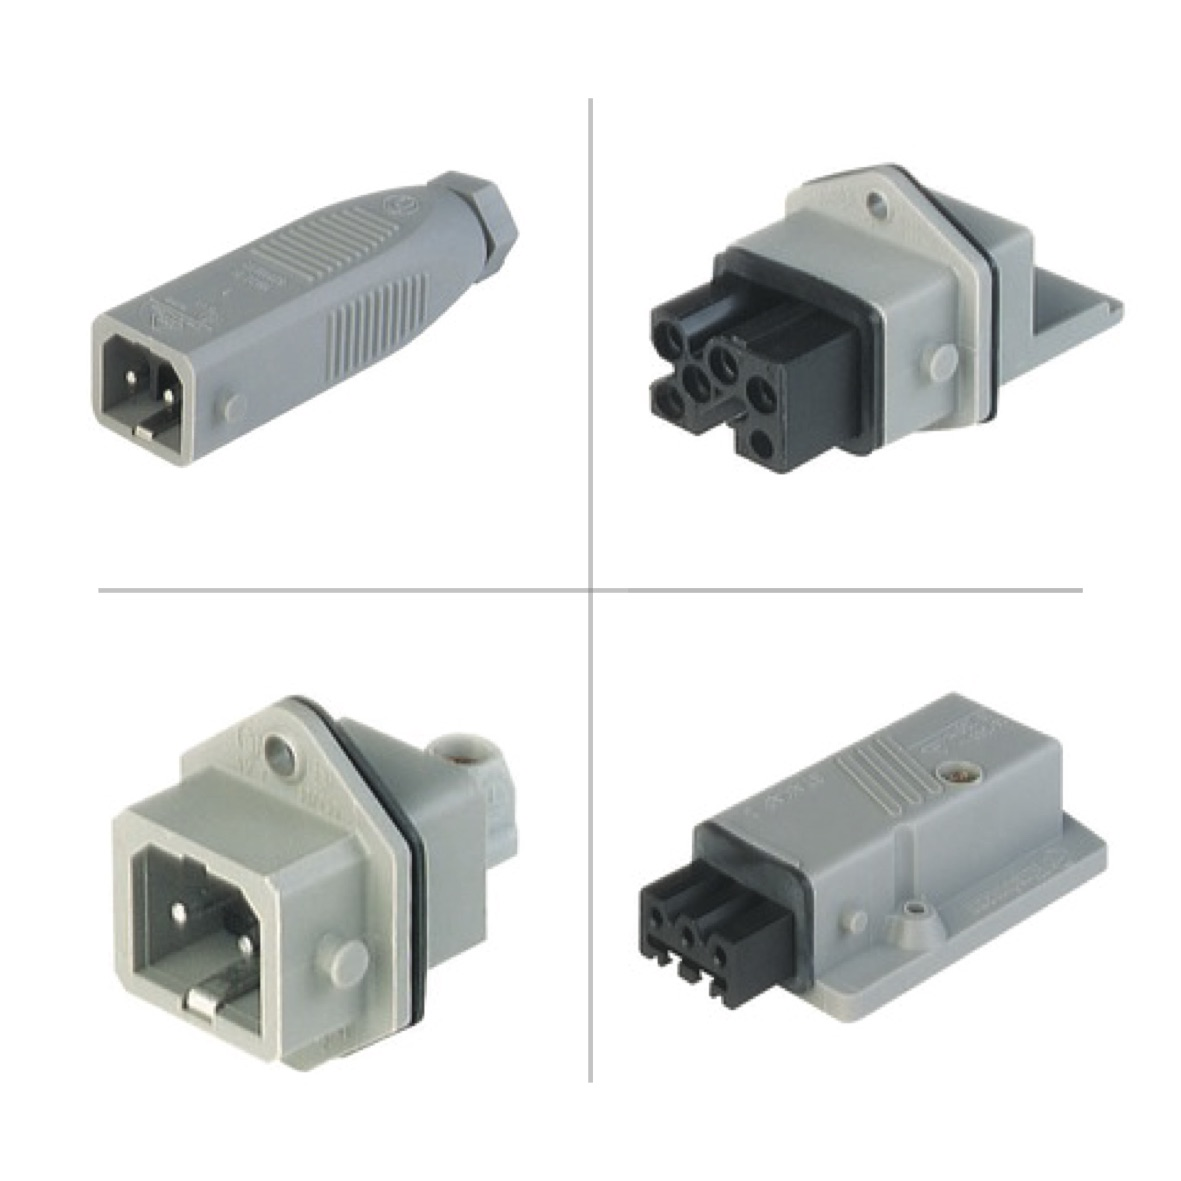 Hirschmann ST Series Power Connectors